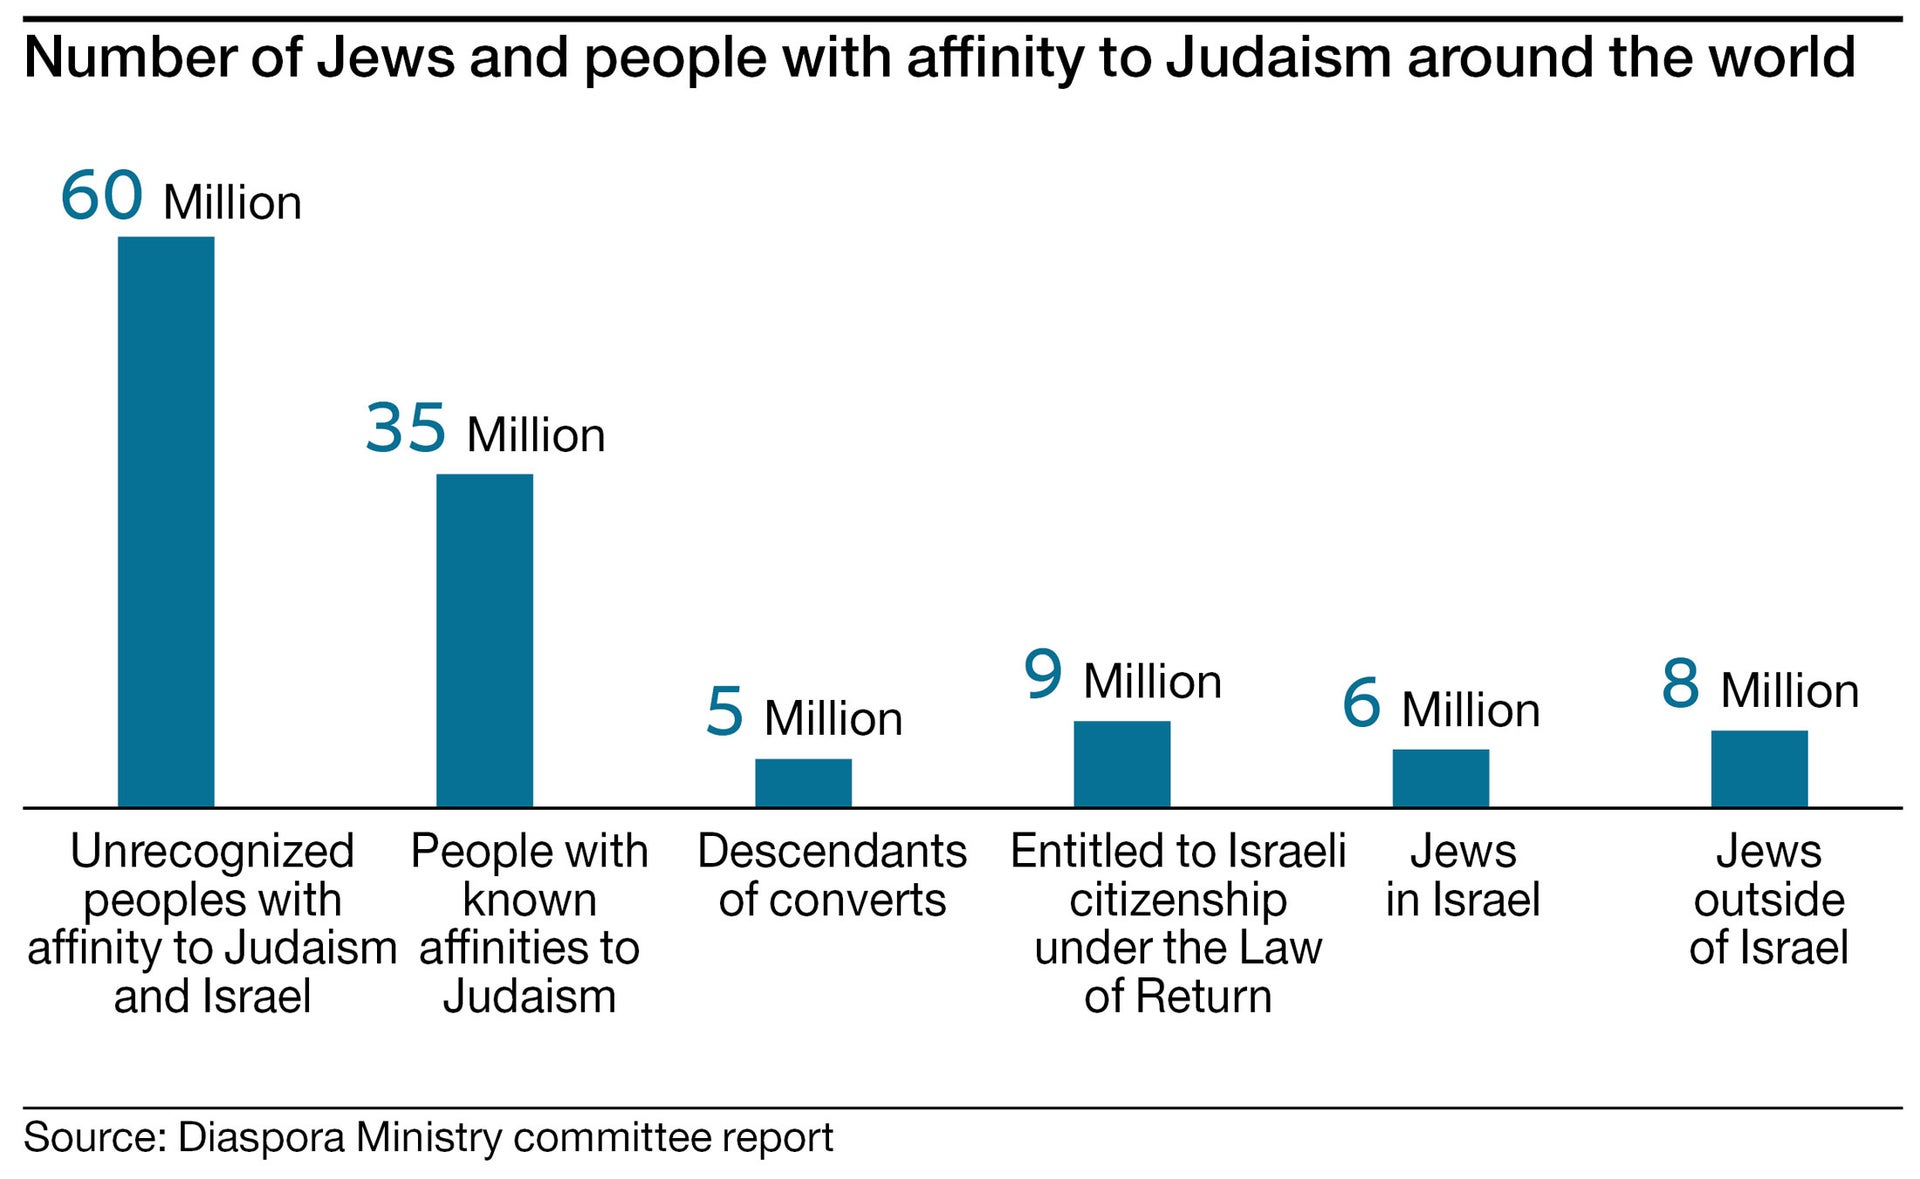 Number of Jews and people with affinity to Judaism around the world